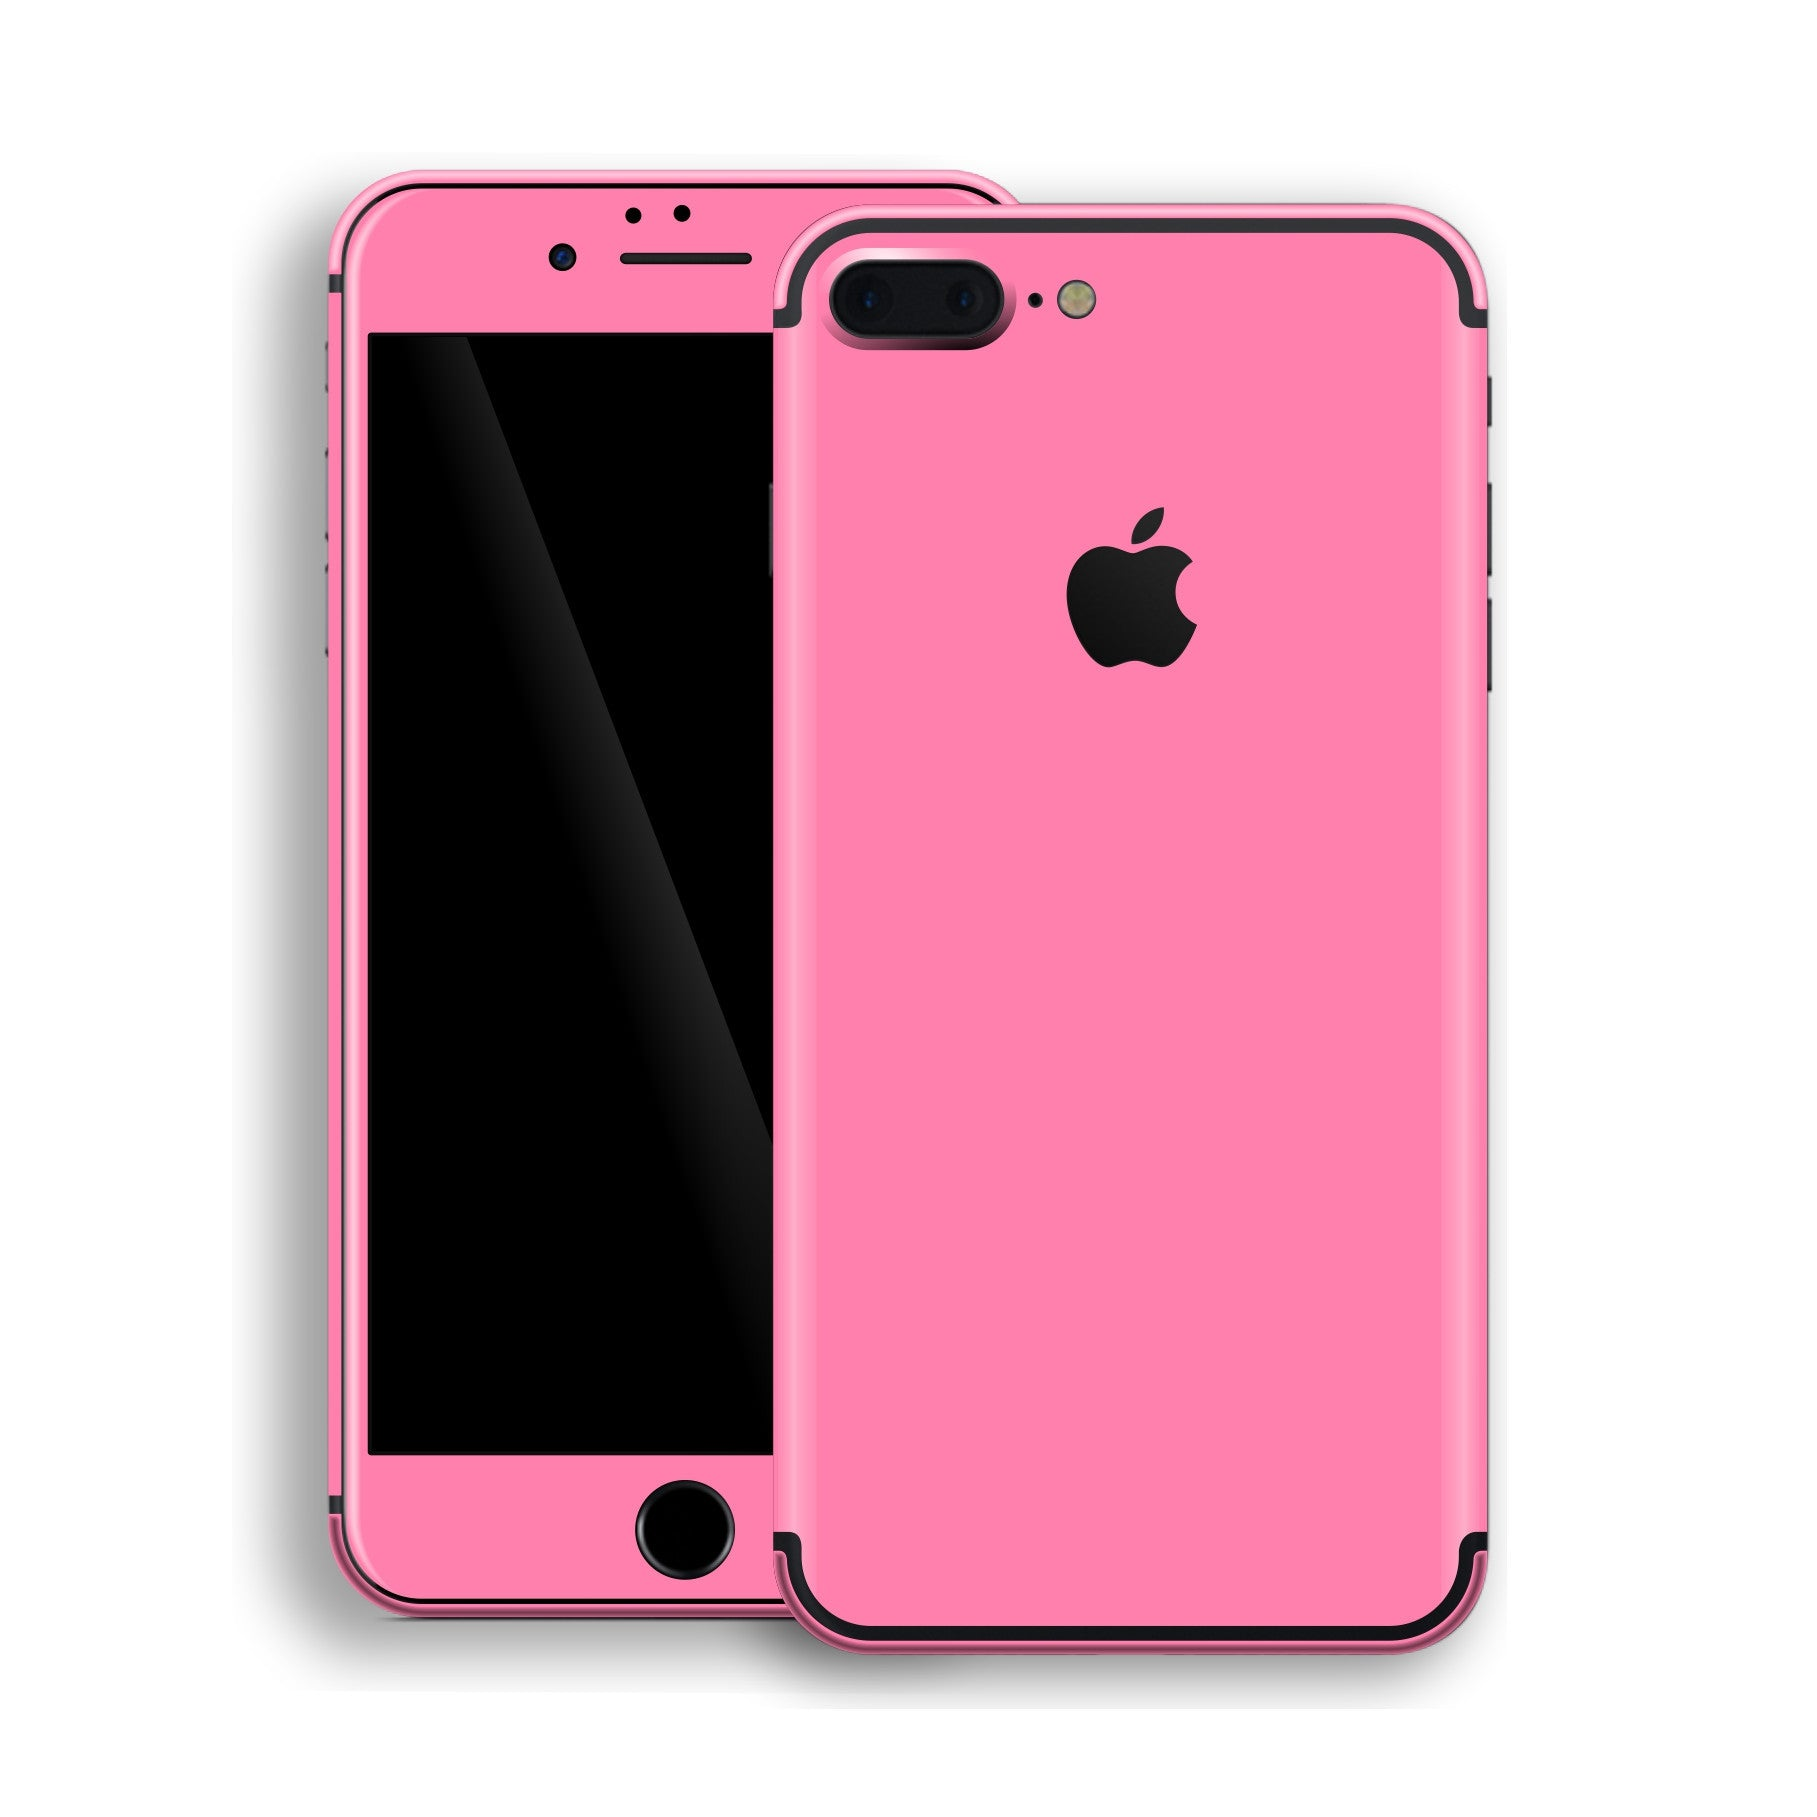 iPhone 7 Plus Pink Matt Skin, Decal, Wrap, Protector, Cover by EasySkinz | EasySkinz.com